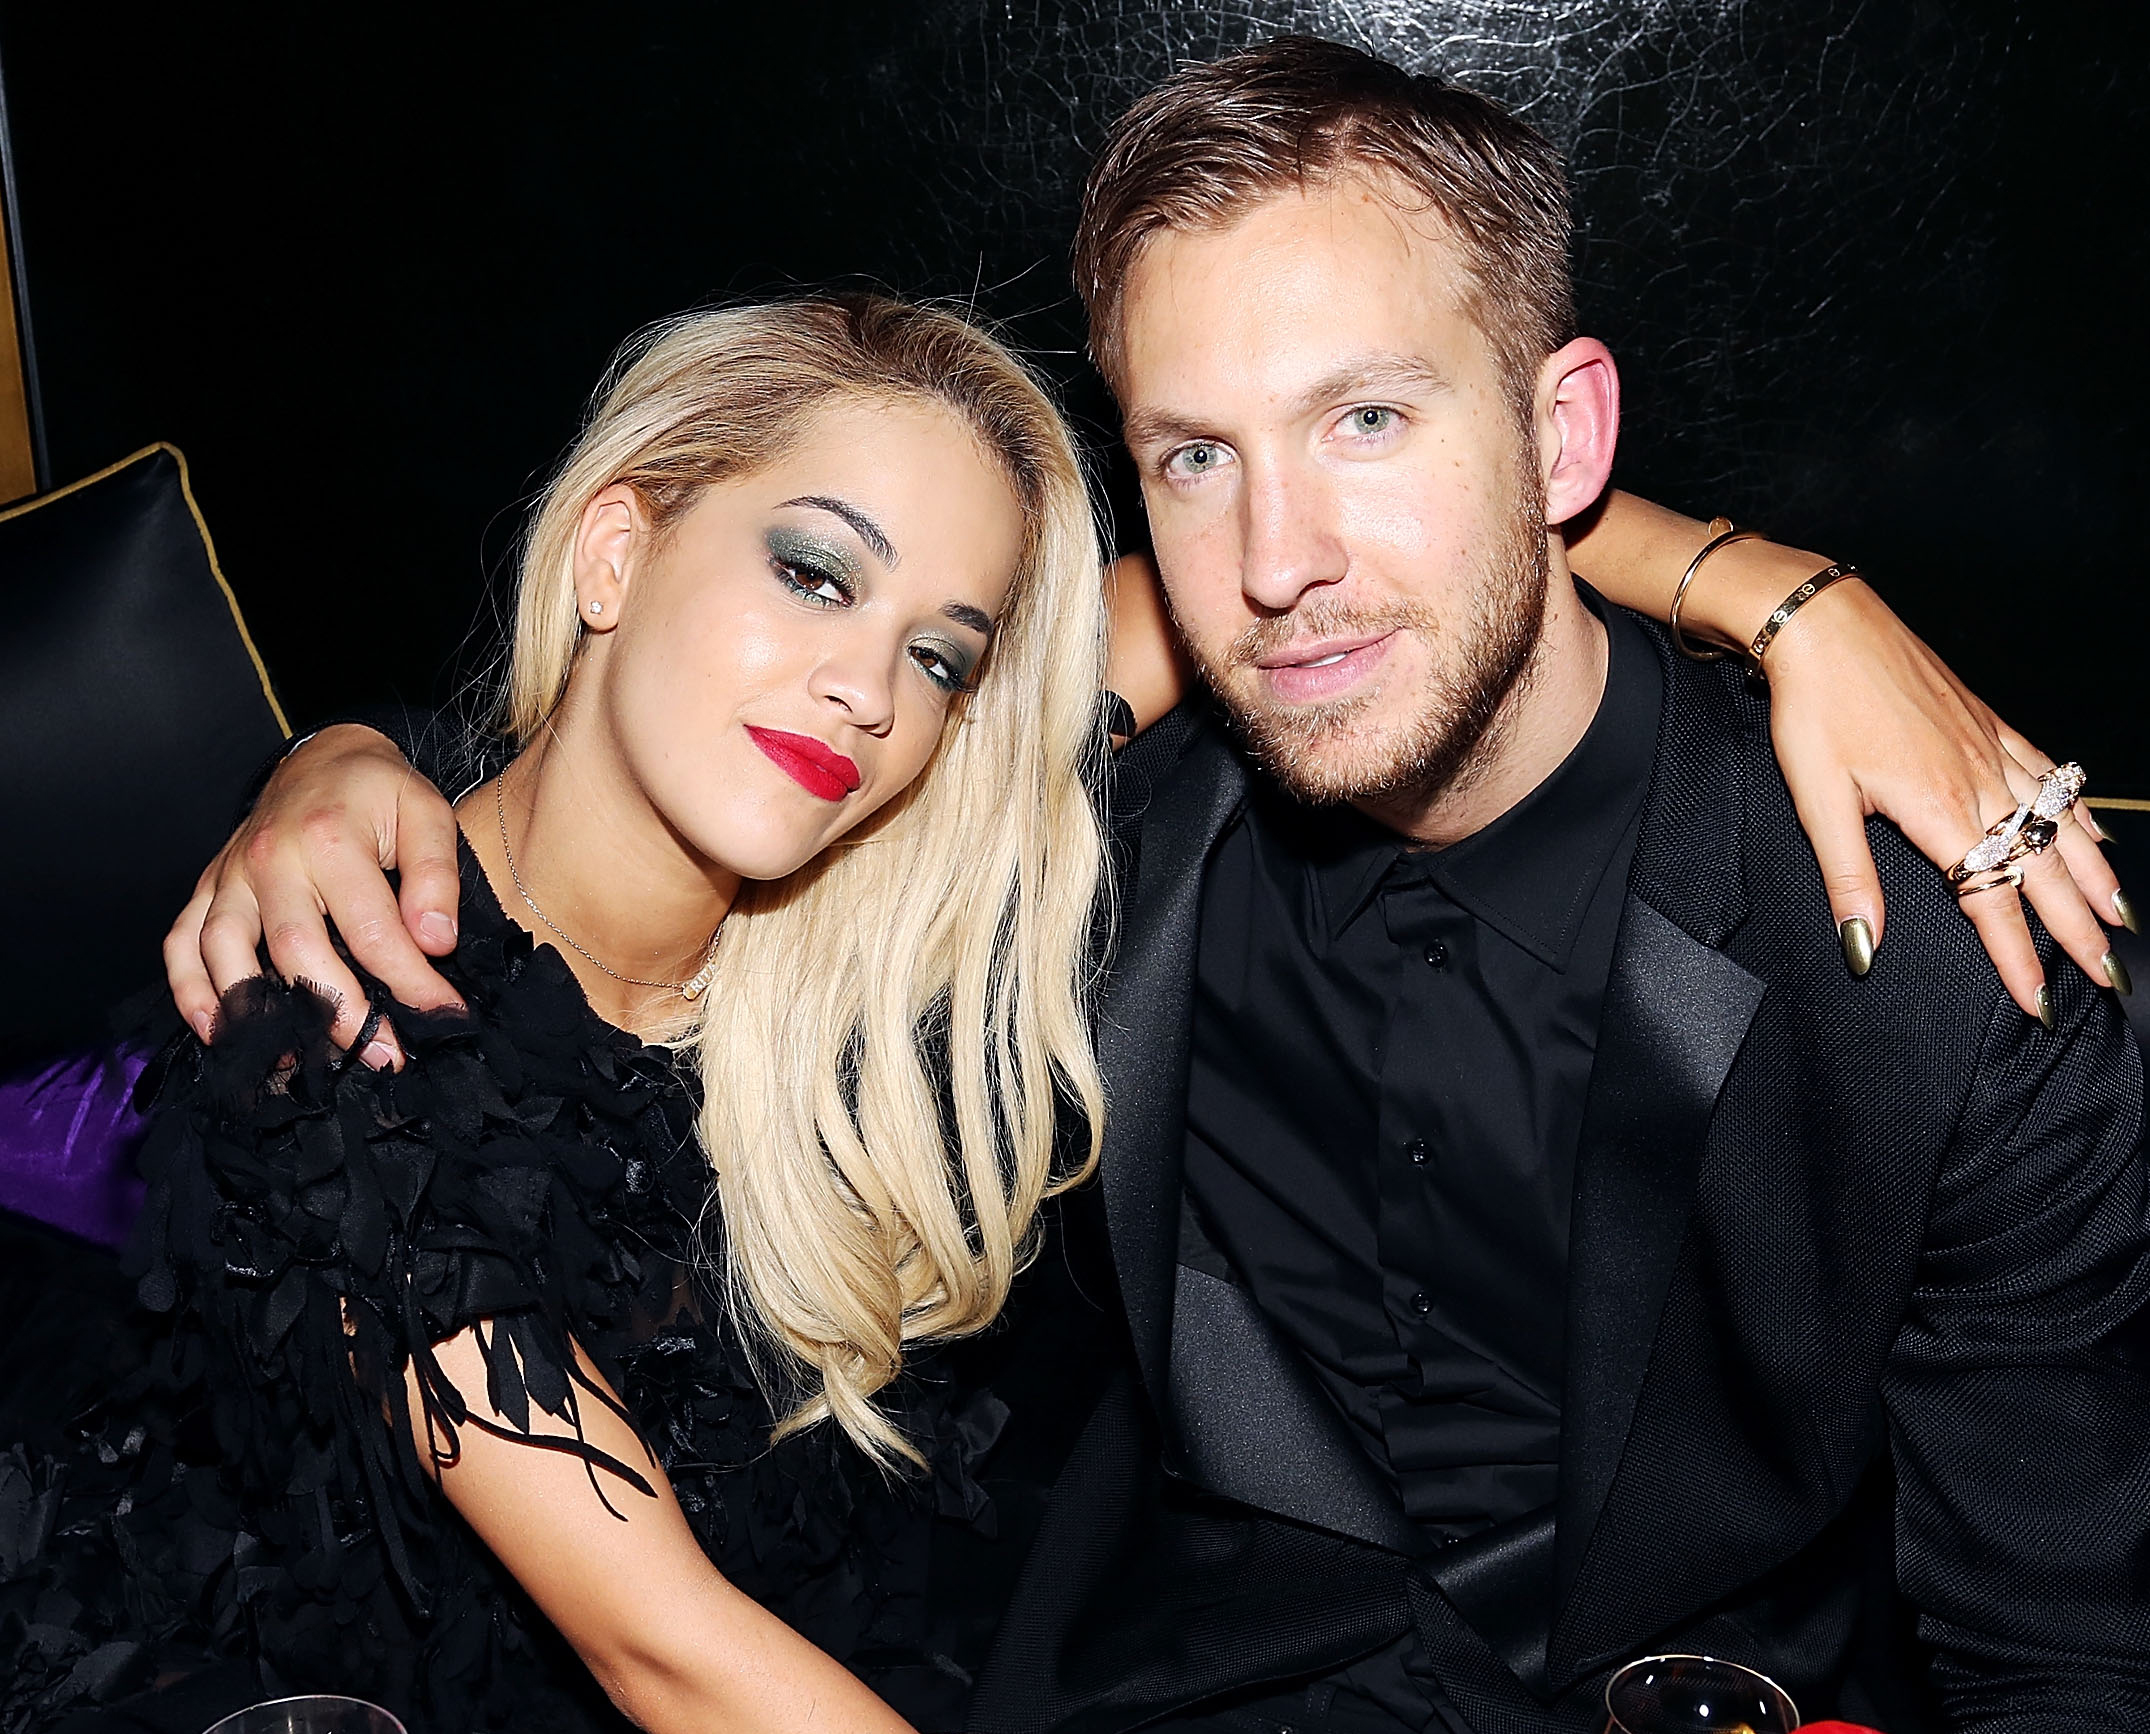 rita-ora-calvin-harris - The beginning and end of Harris and Ora's relationship played out on Twitter. The duo started dating in May 2013 after they connected on the social media website and announced their split on the same site in early 2014.